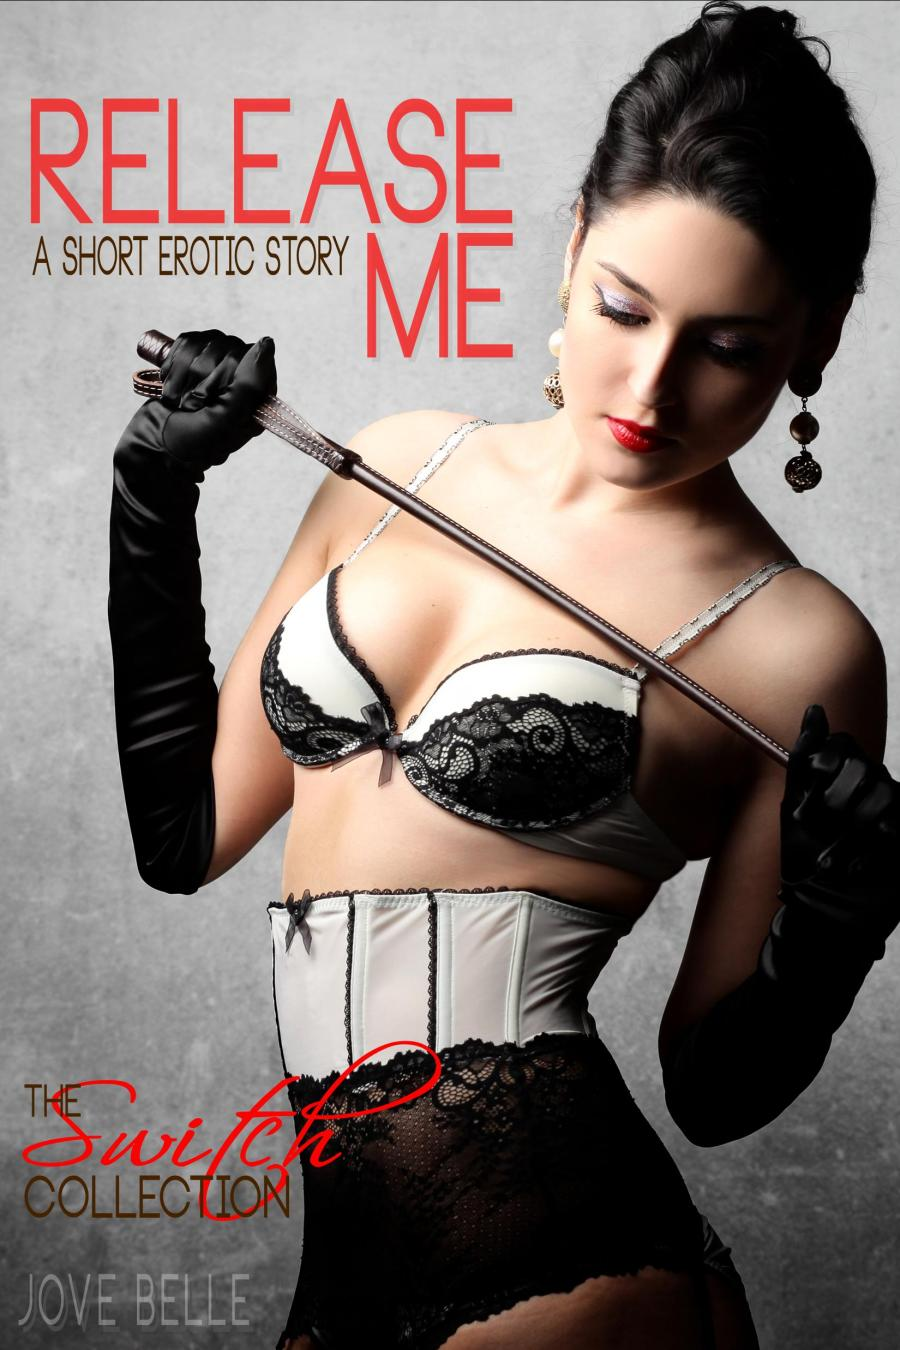 Release Me–A Short Erotic Story from the Switch Collection